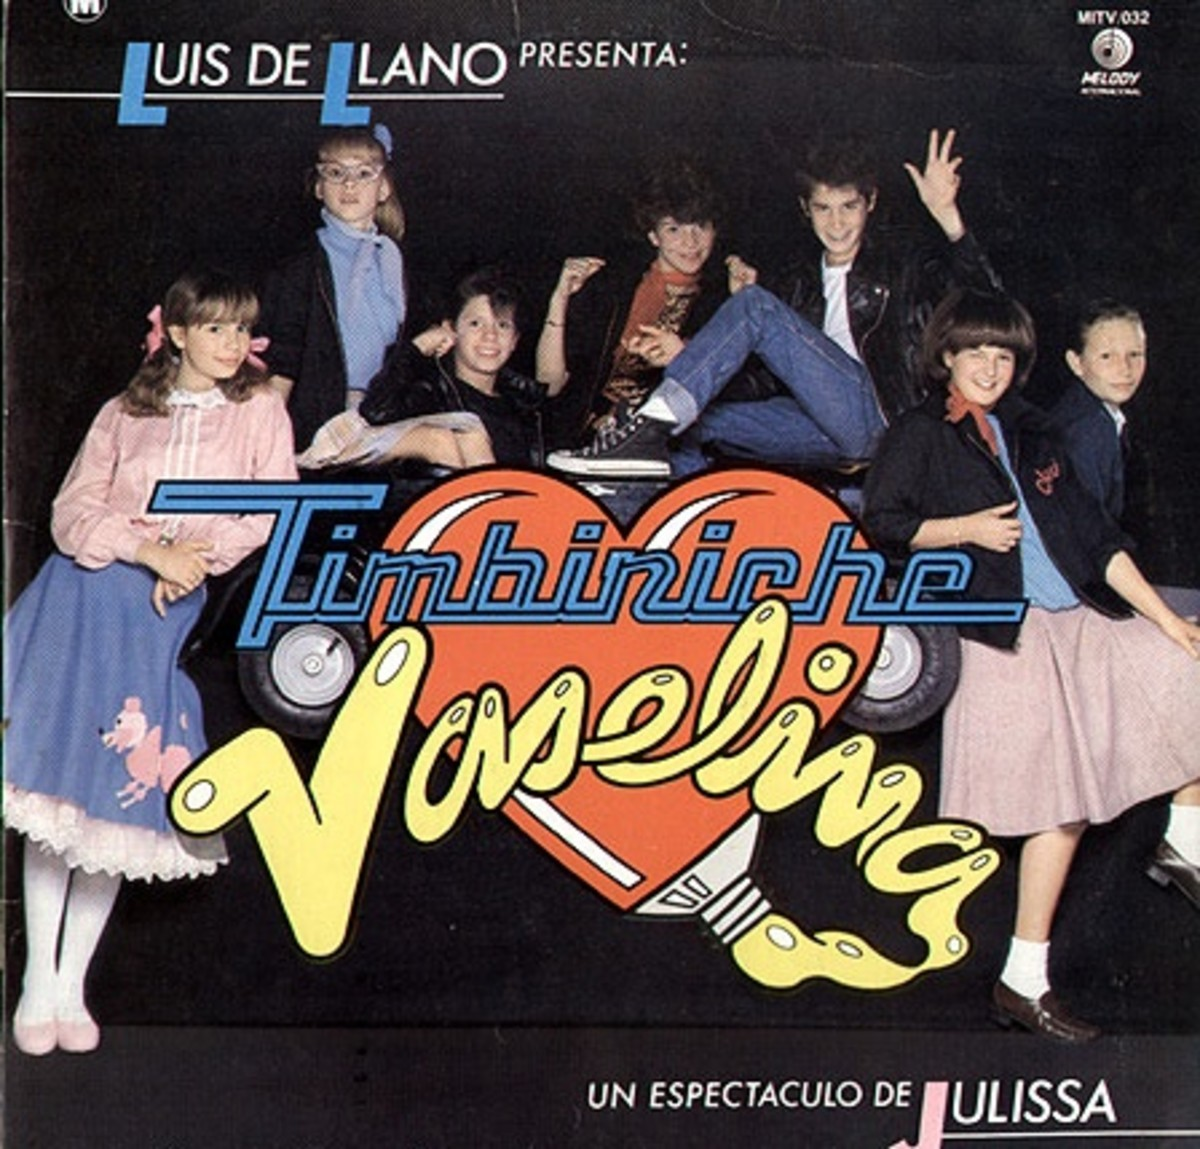 front album of their 1984 album Vaselina (Grease)